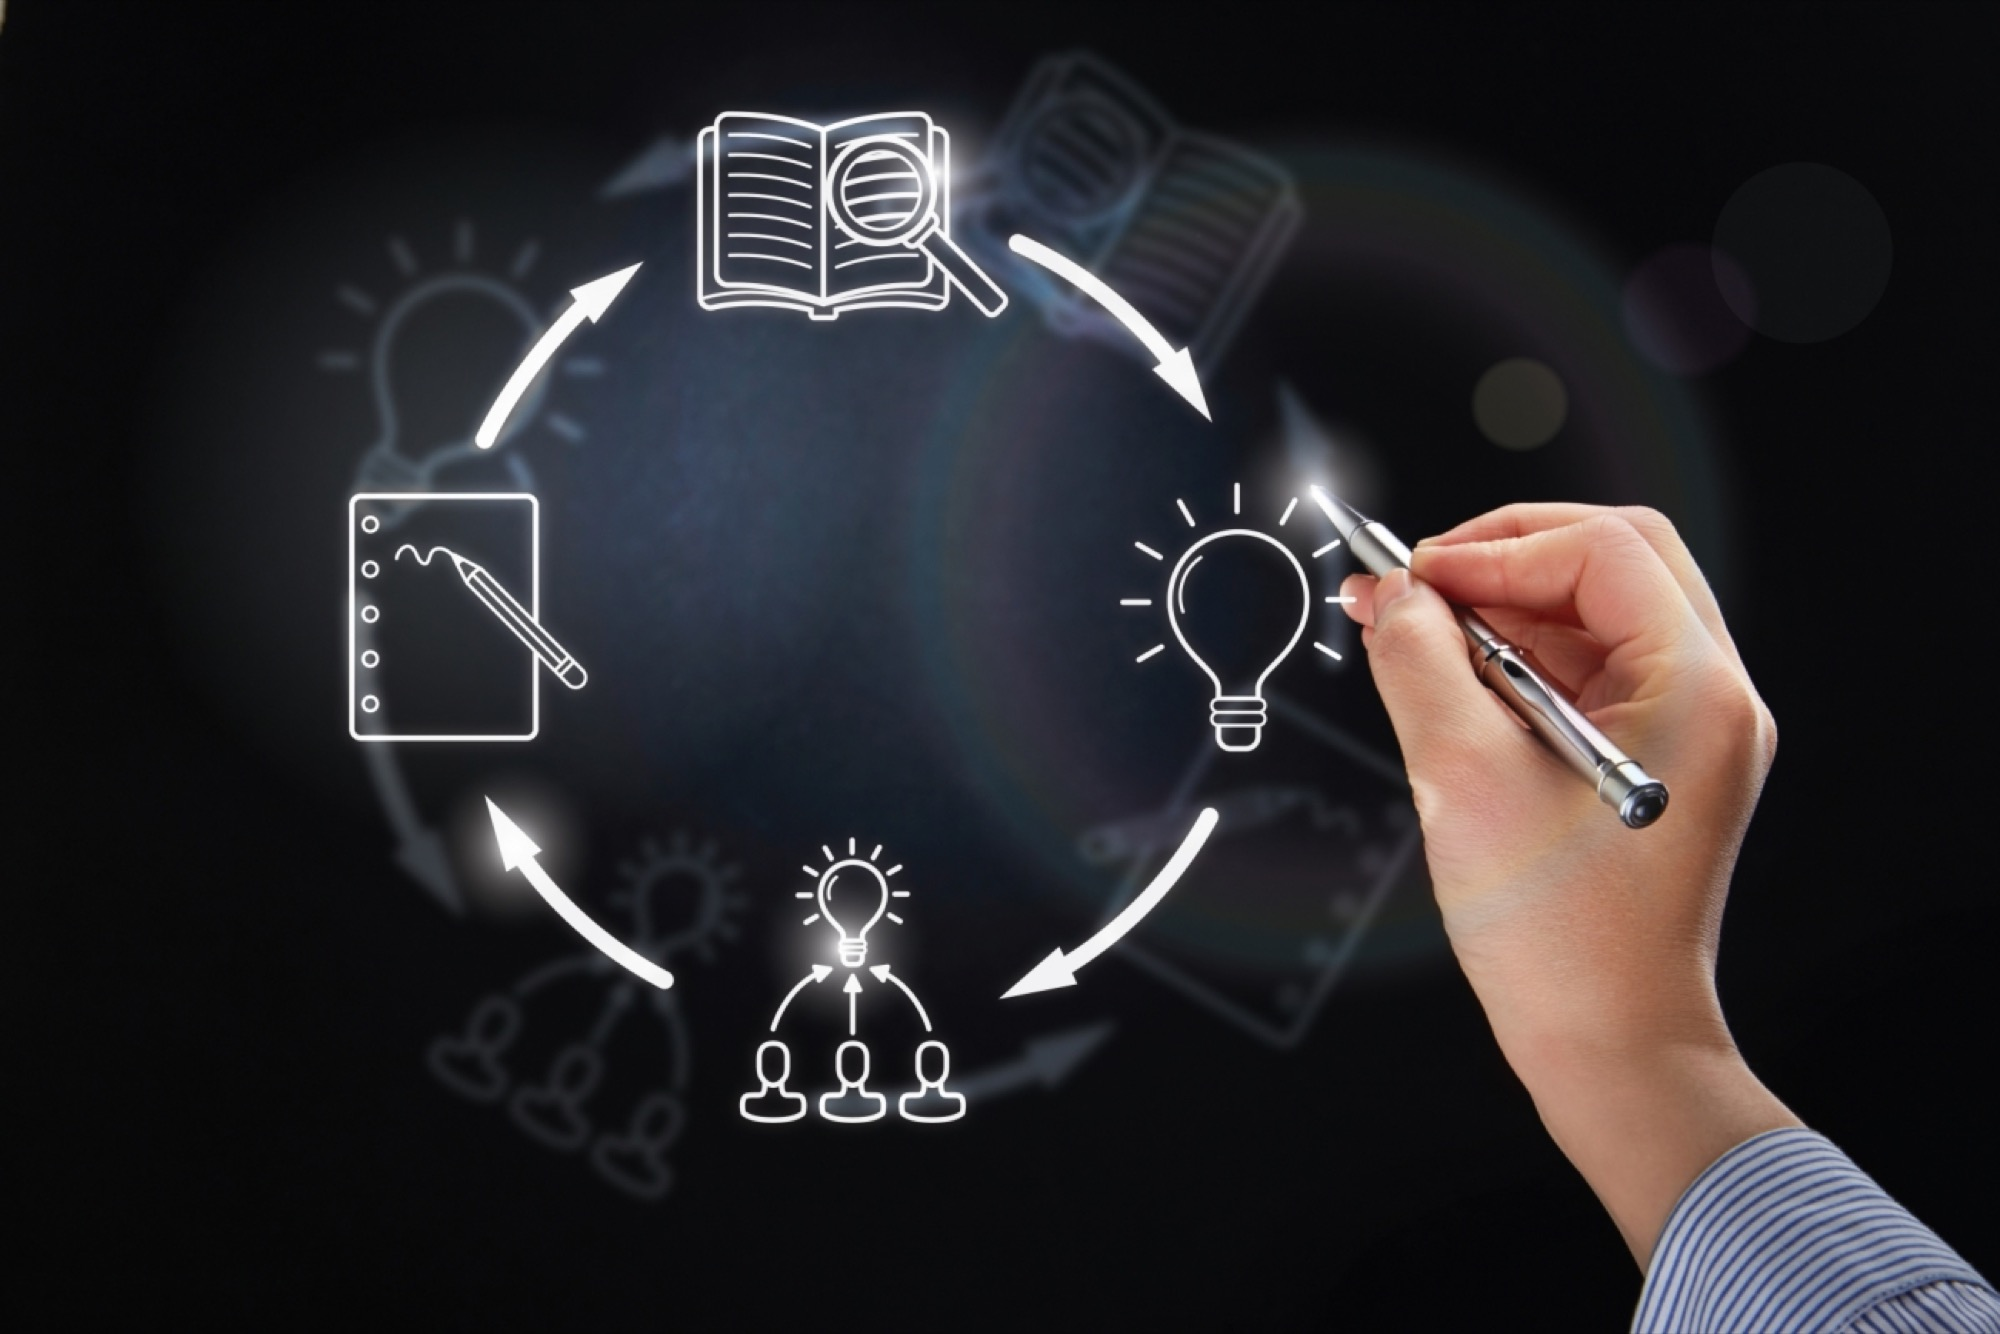 #5 Reasons Why Start-ups Should Invest in R&D to Produce Innovative Products and Services